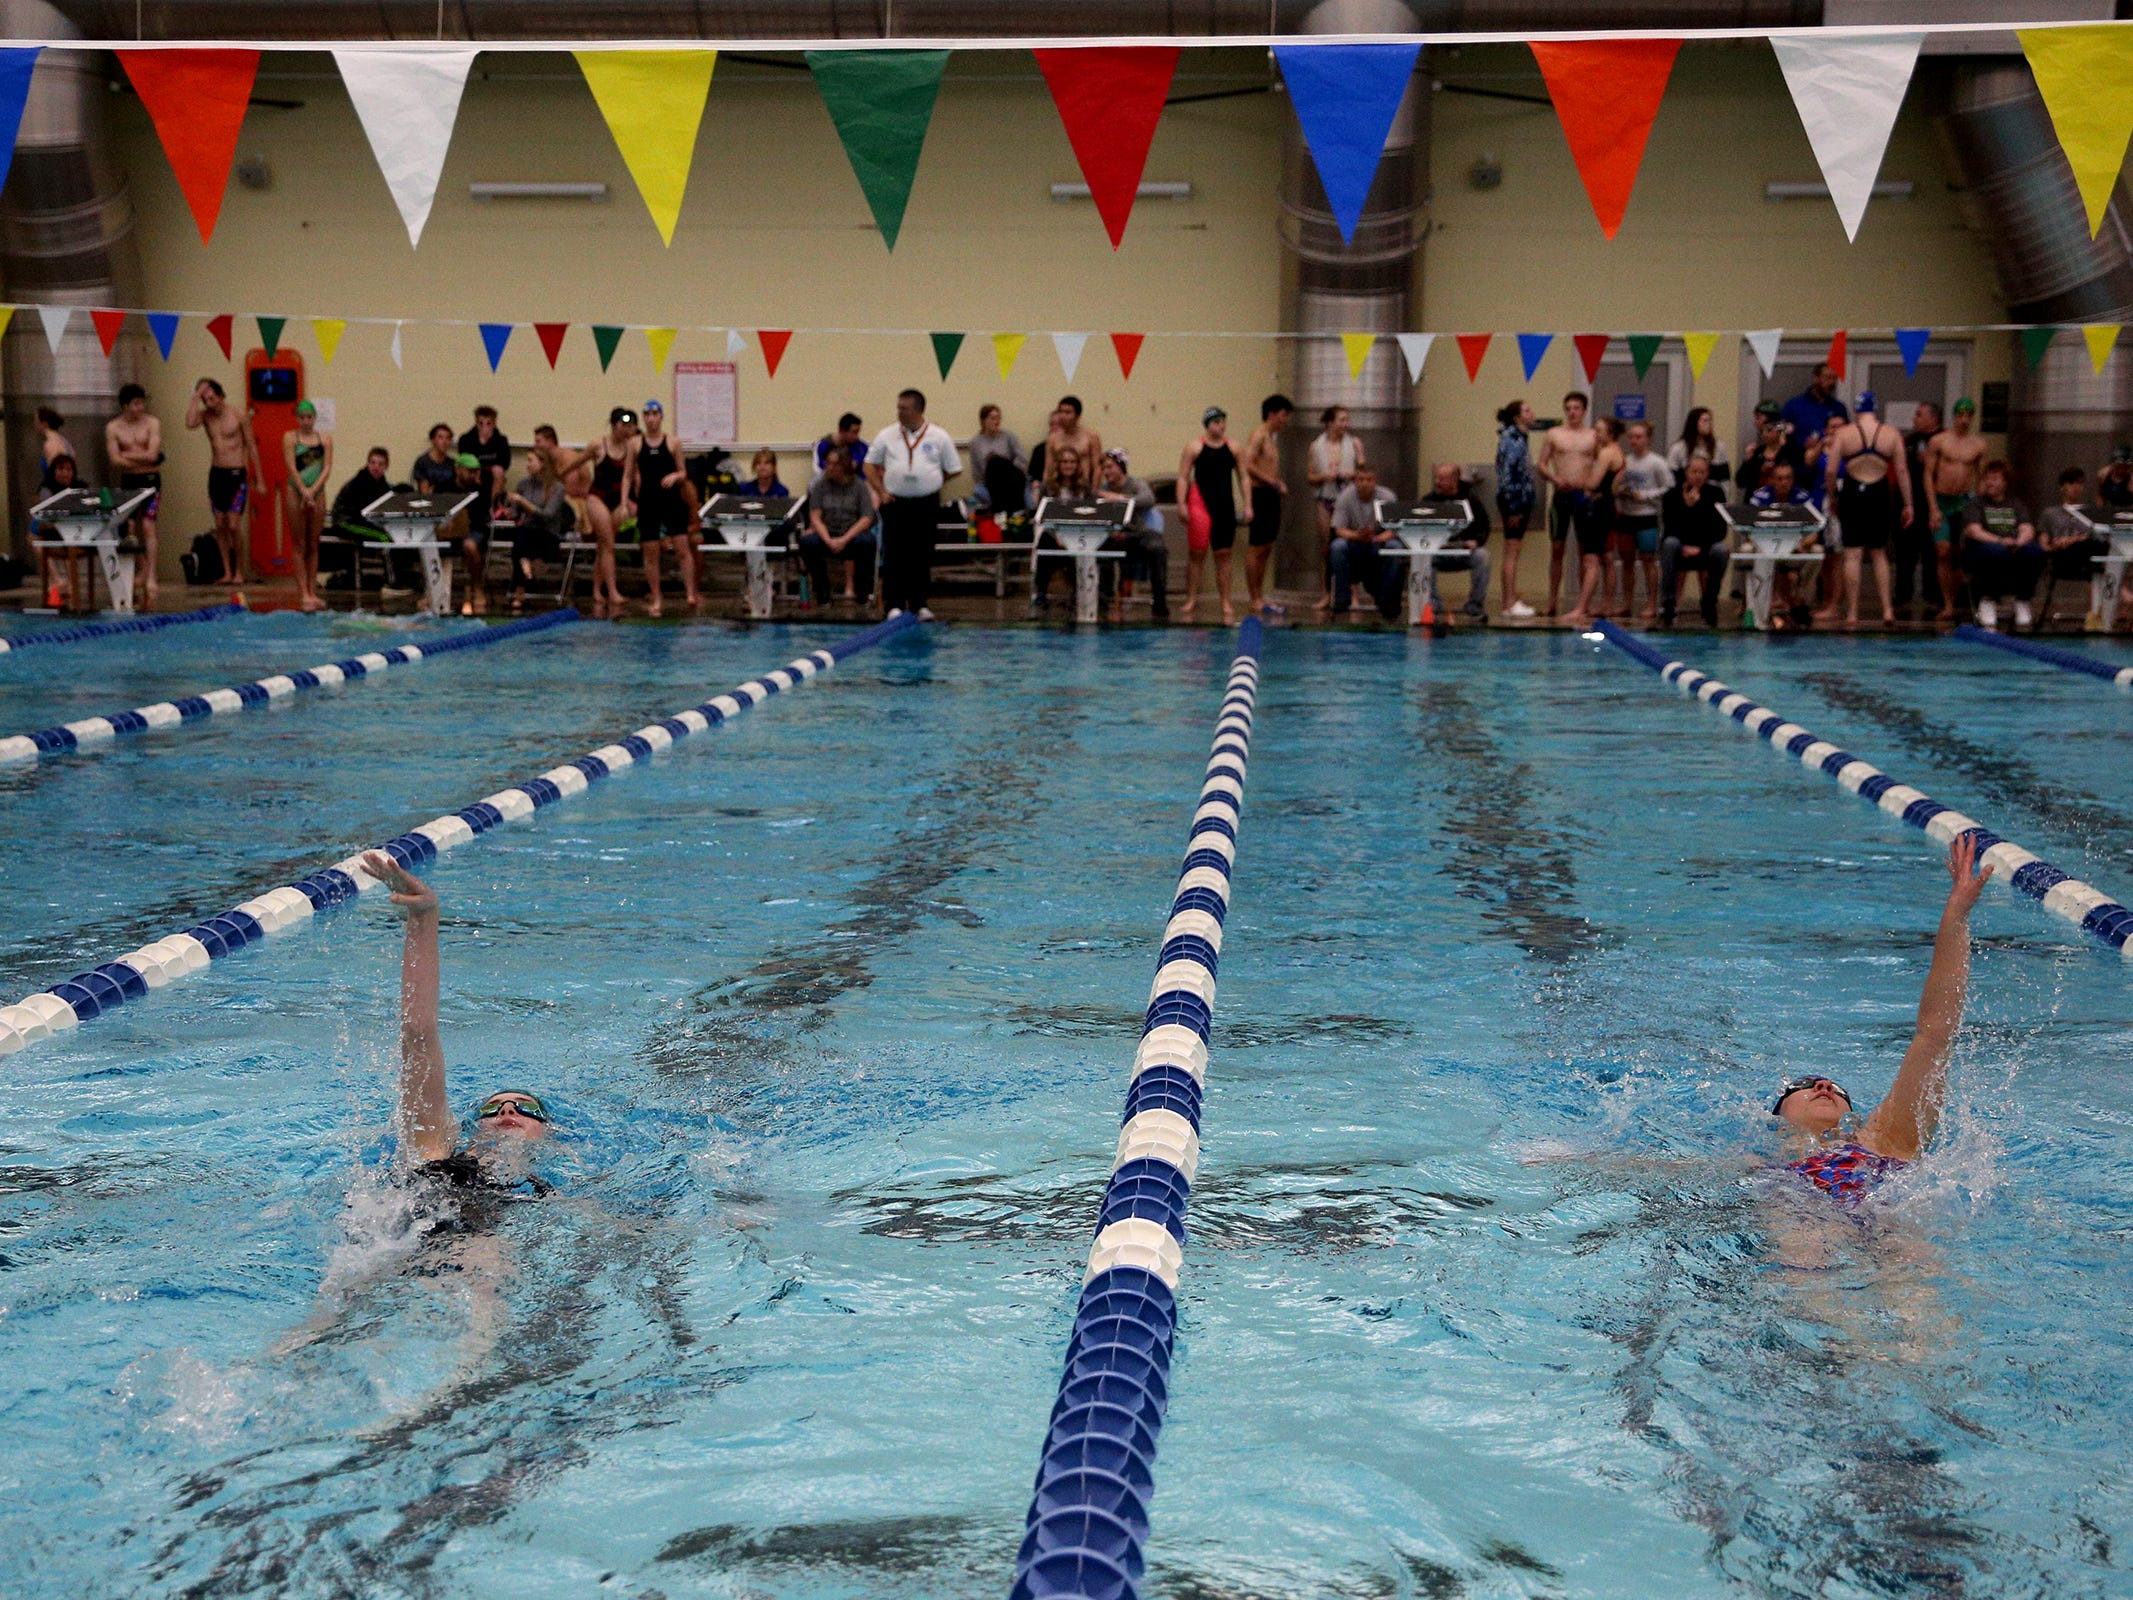 West Salem sophomore Katelyn Hack (left) and South Salem senior Shelby Wasterberg (right) compete in the girls 200-yard IM at the OSAA 6A Mountain Valley Conference swimming championships at the Kroc Center in Salem, Oregon on Friday, Feb. 8, 2019.